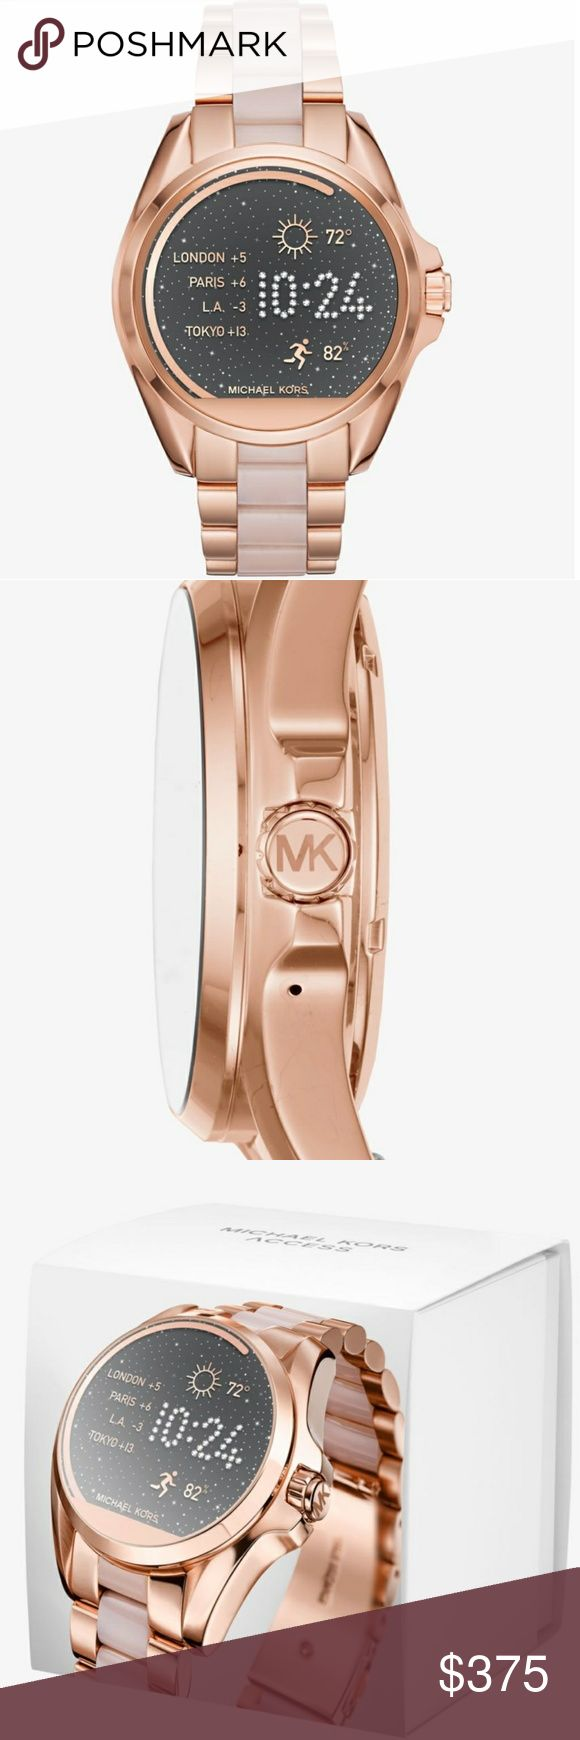 Michael Kors Bradshaw Smartwatch -Authentic.  -NWT.  -NO TRADES.  -Powered by Android Wear.  -Compatible with iPhone® and Android™ phones.  -Oversized.  -Rose Gold-Tone Stainless Steel/Acetate.  -44.5mm Case.  -Digital Movement.  -Social media updates.  -Text/email alerts.  -App notifications.  -Smart help from Google.  -Built-in fitness tracking.  -Voice-activated Google.  -Clasp Fastening.  -Water Resistant Up to 1 ATM.  -2-Year Warranty.  -Imported. Michael Kors Accessories Watches